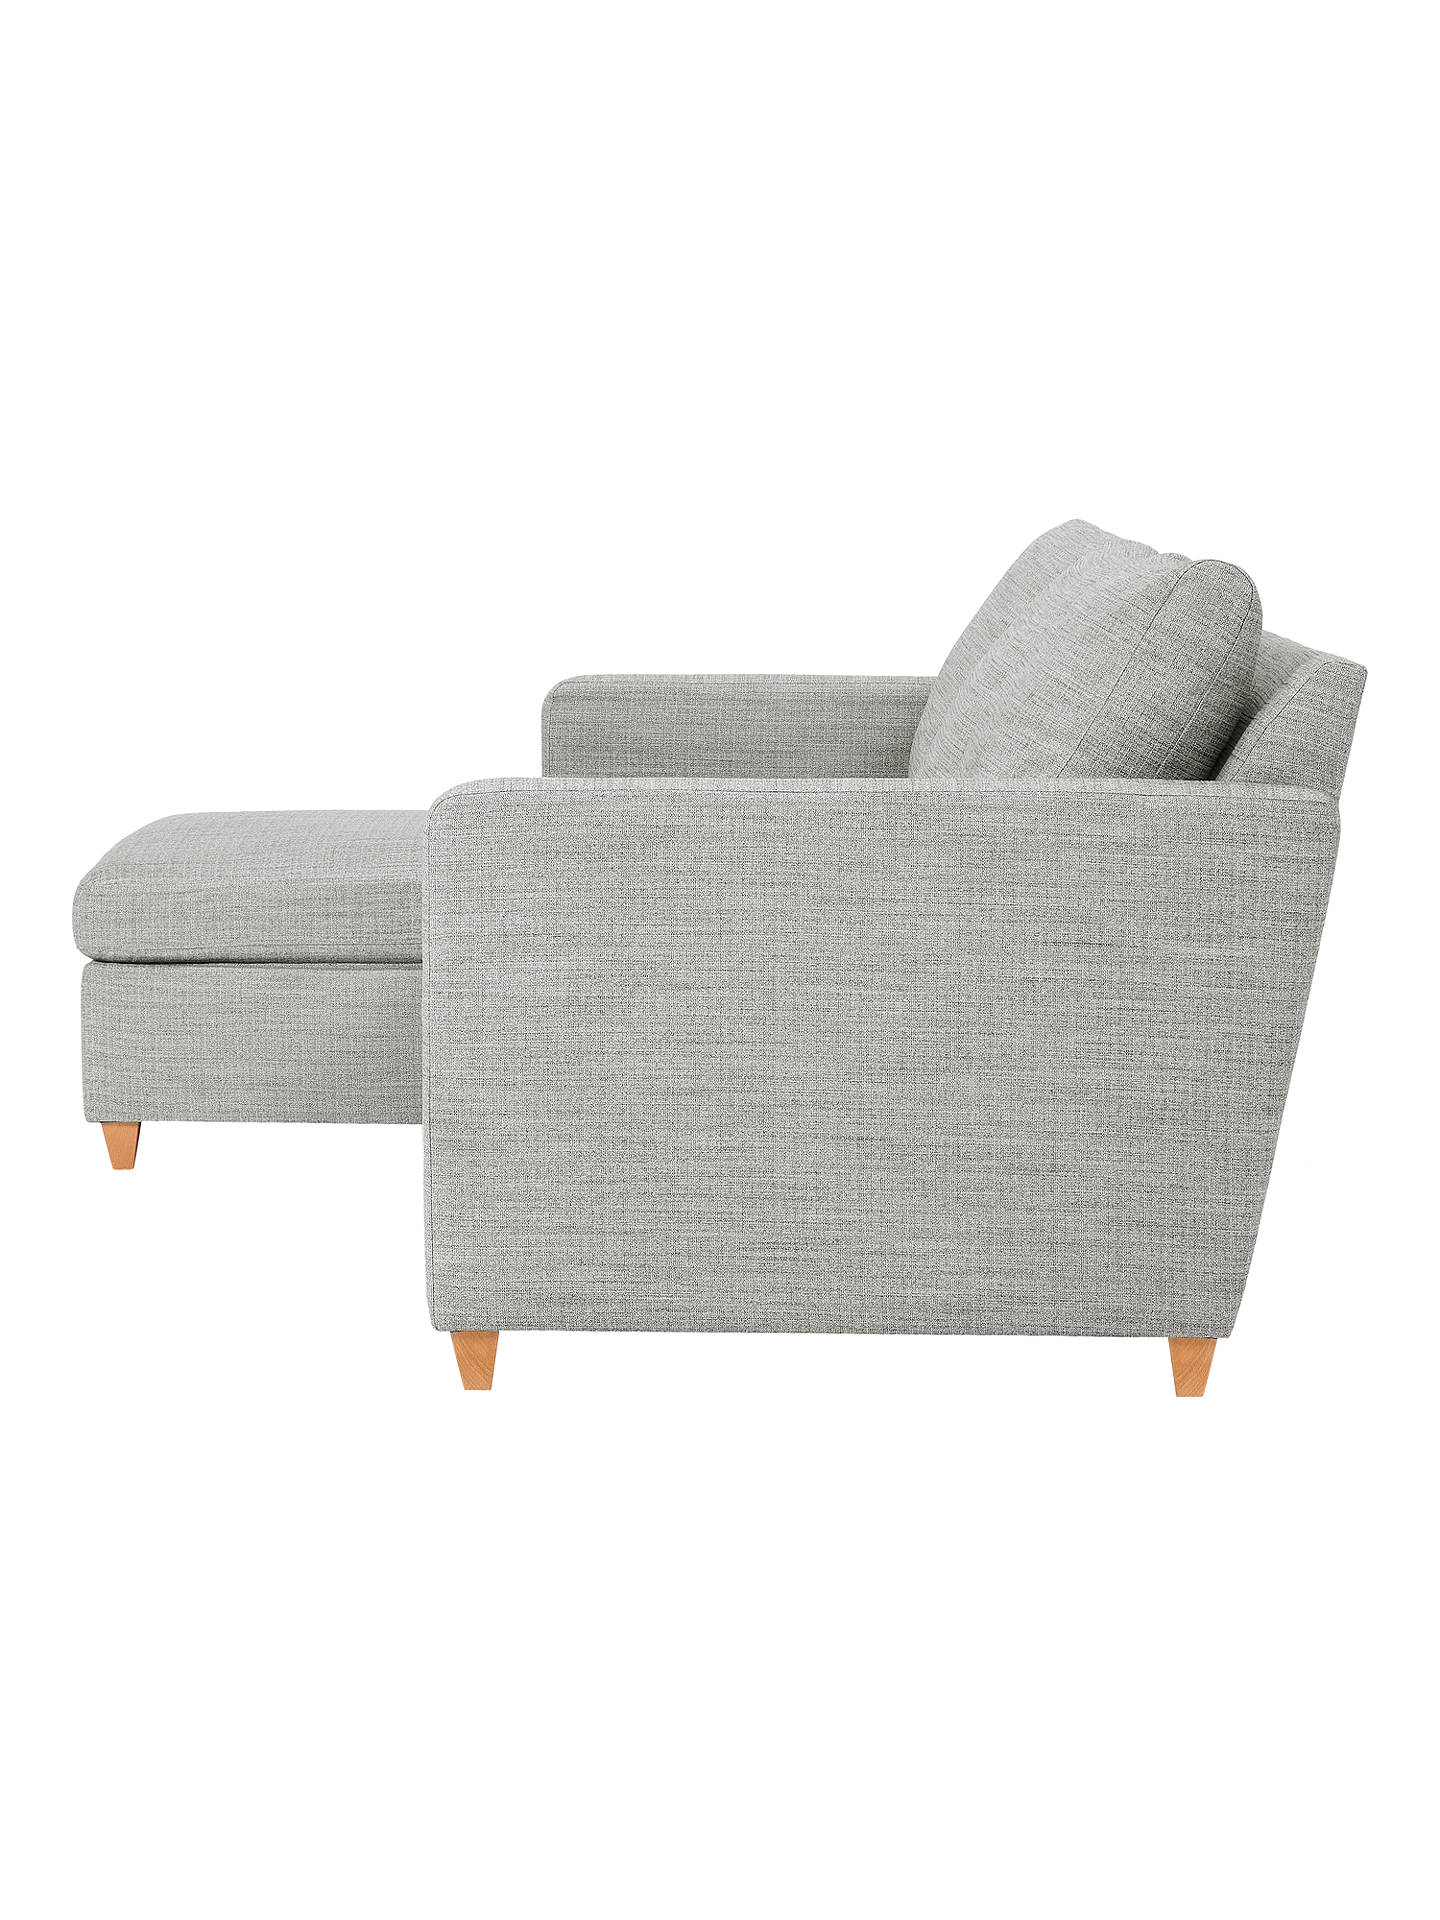 0f4e37a41142 ... Buy John Lewis & Partners Bailey LHF Chaise End Sofa Bed Online at  johnlewis. ...